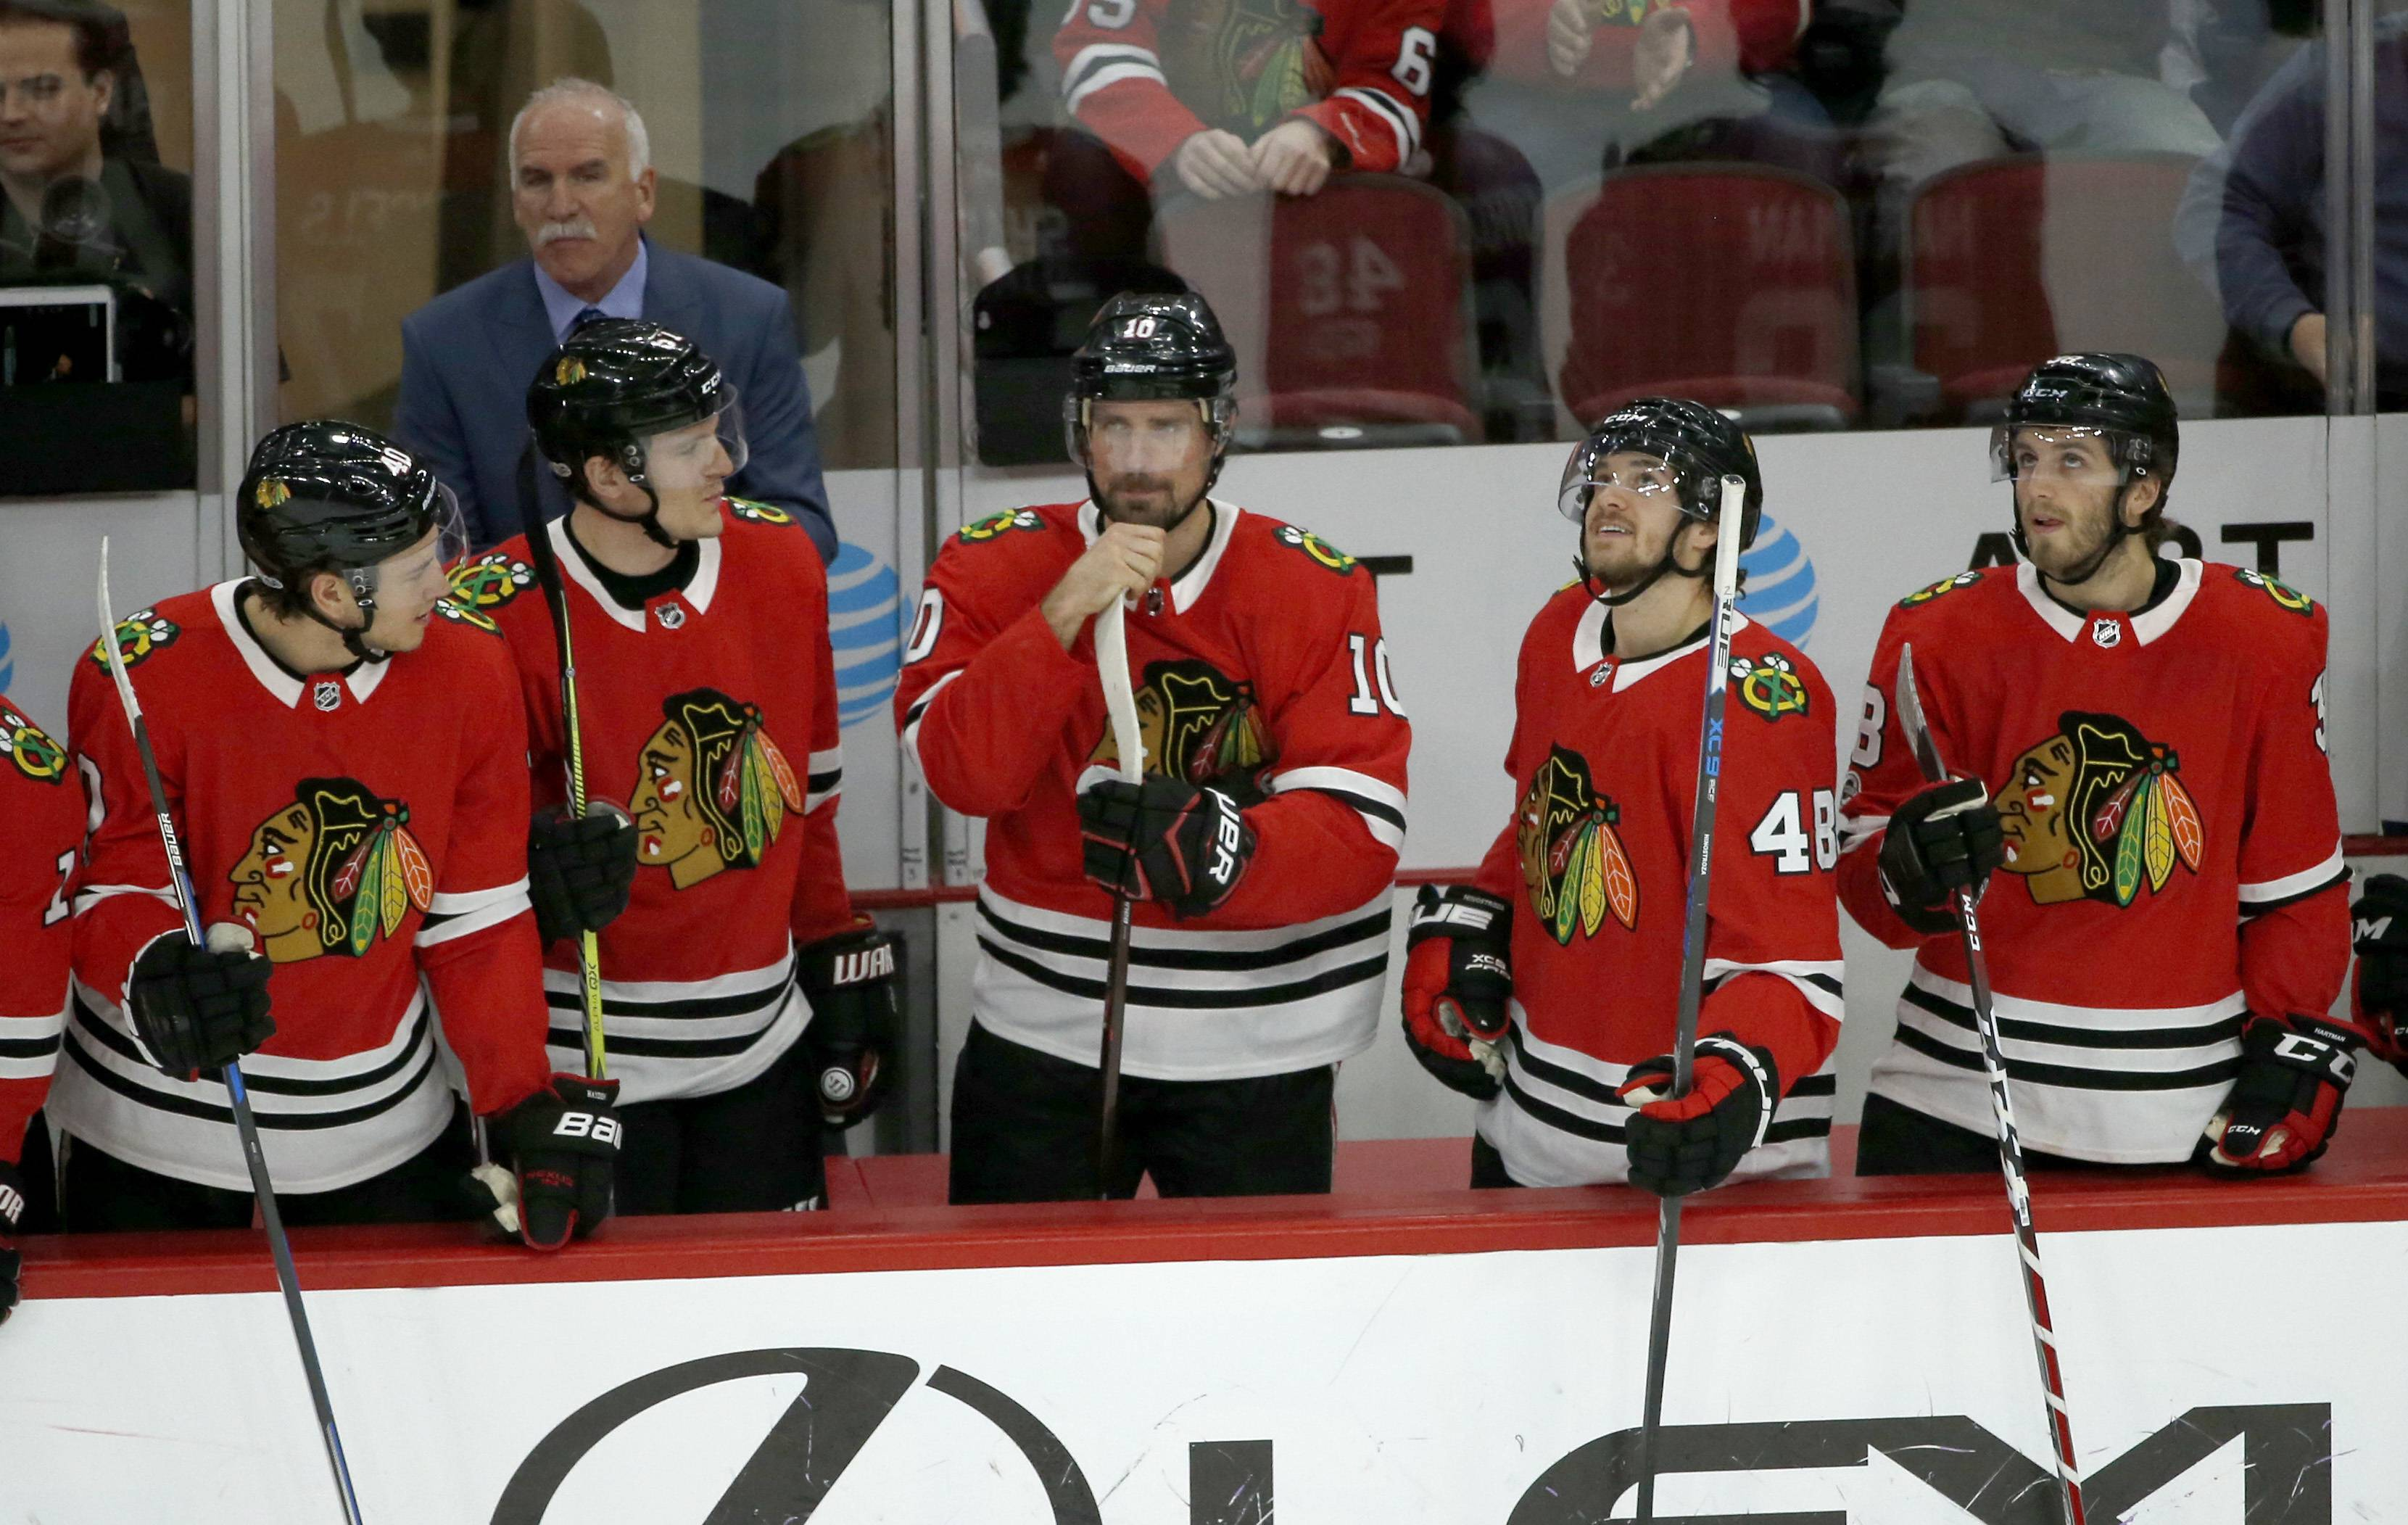 Chicago Blackhawks' Patrick Sharp, center, is acknowledged by teammates and fans for playing in his 900th career NHL hockey game during the first period against the Florida Panthers Tuesday, Dec. 12, 2017, in Chicago. (AP Photo/Charles Rex Arbogast)